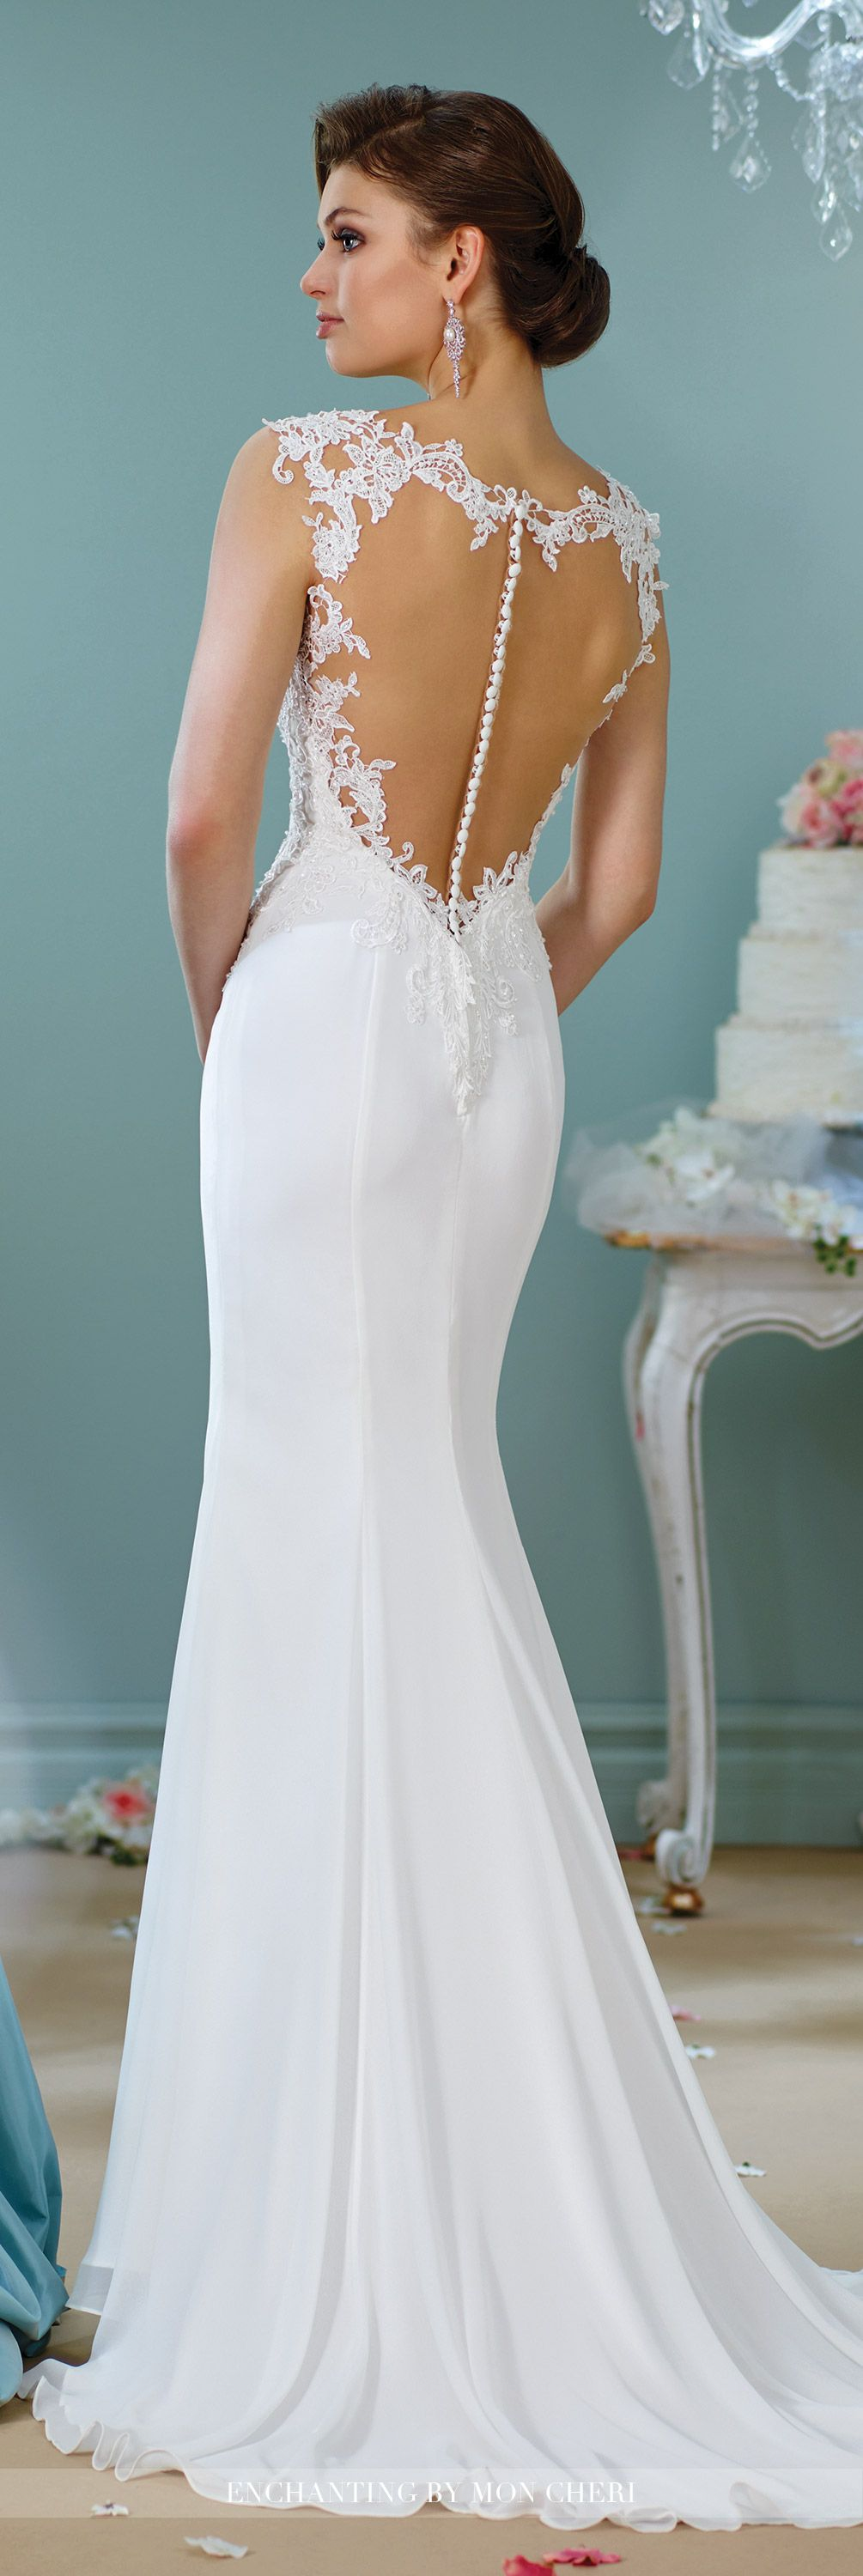 Beaded cap sleeve wedding dress 216152 enchanting by mon for Casual lace wedding dress